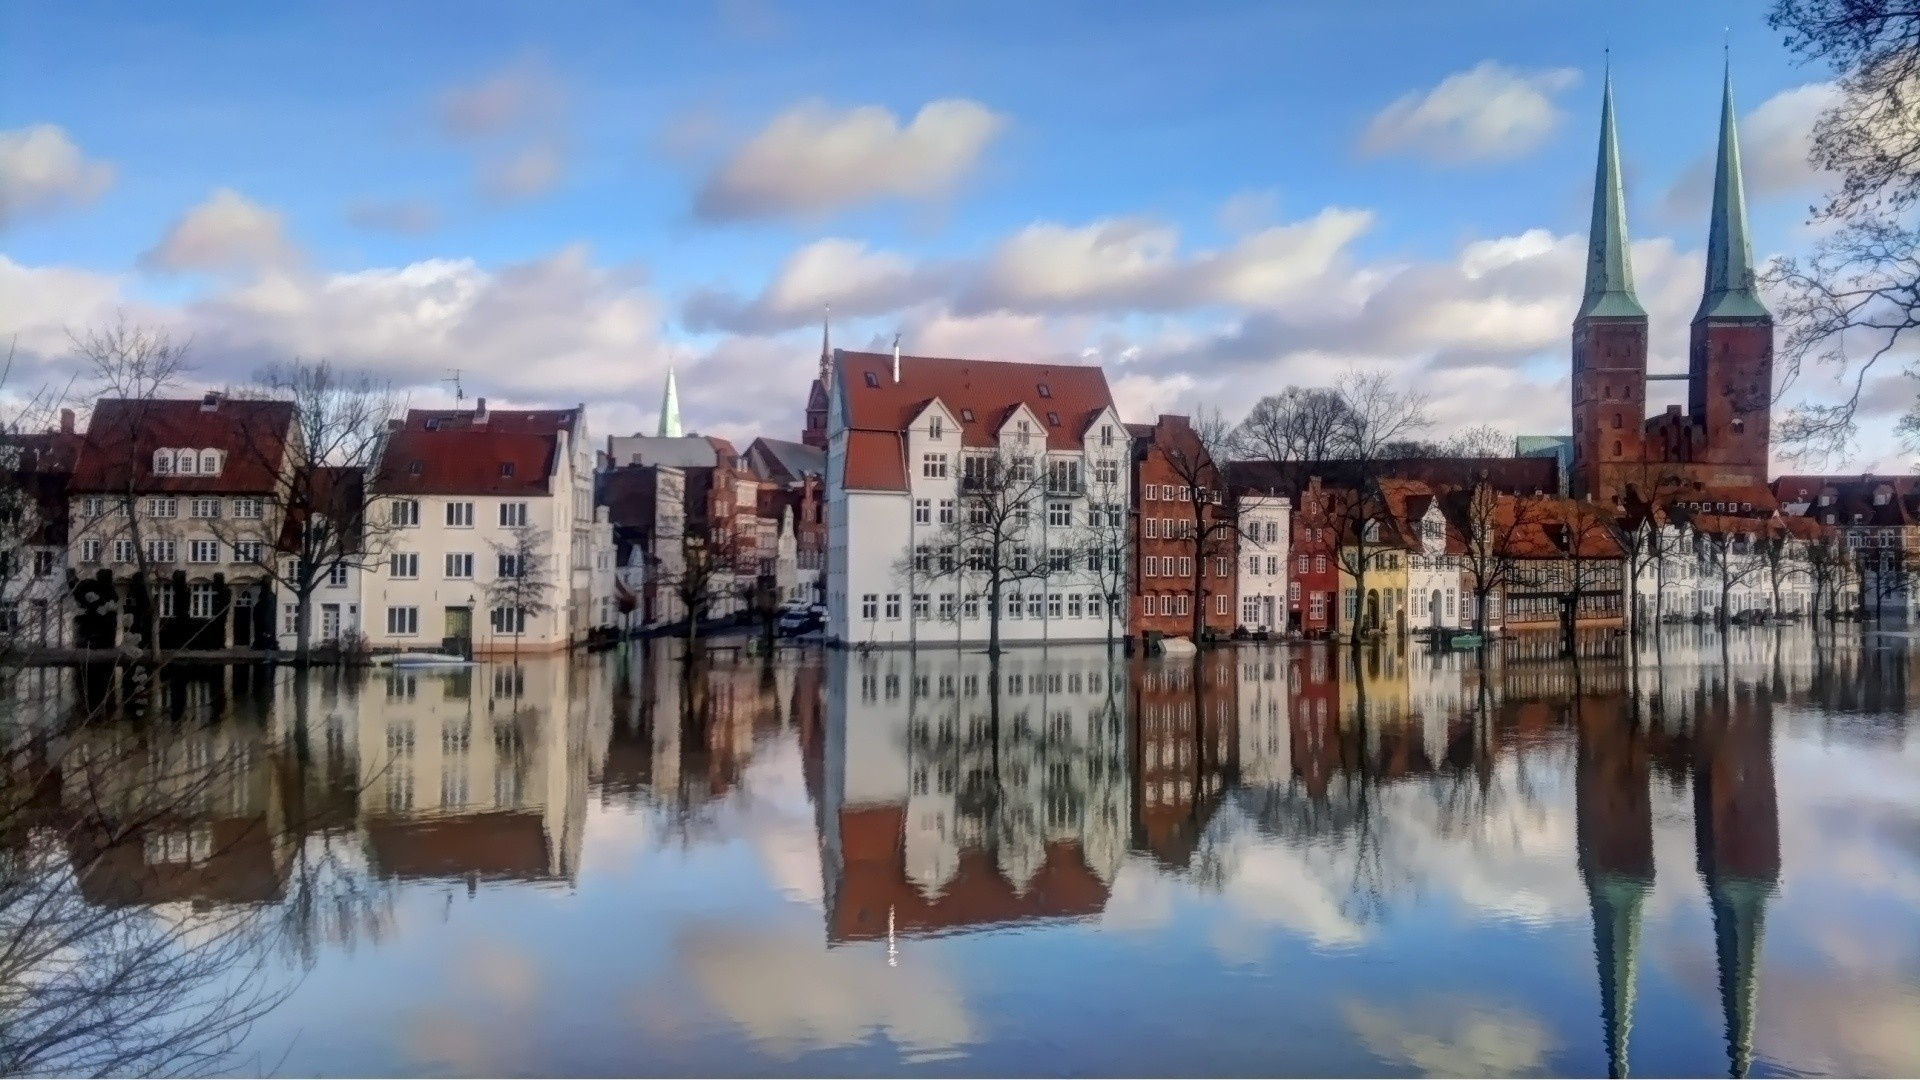 Europe Town Houses Buildings Trees Water Reflection Sky Clouds City